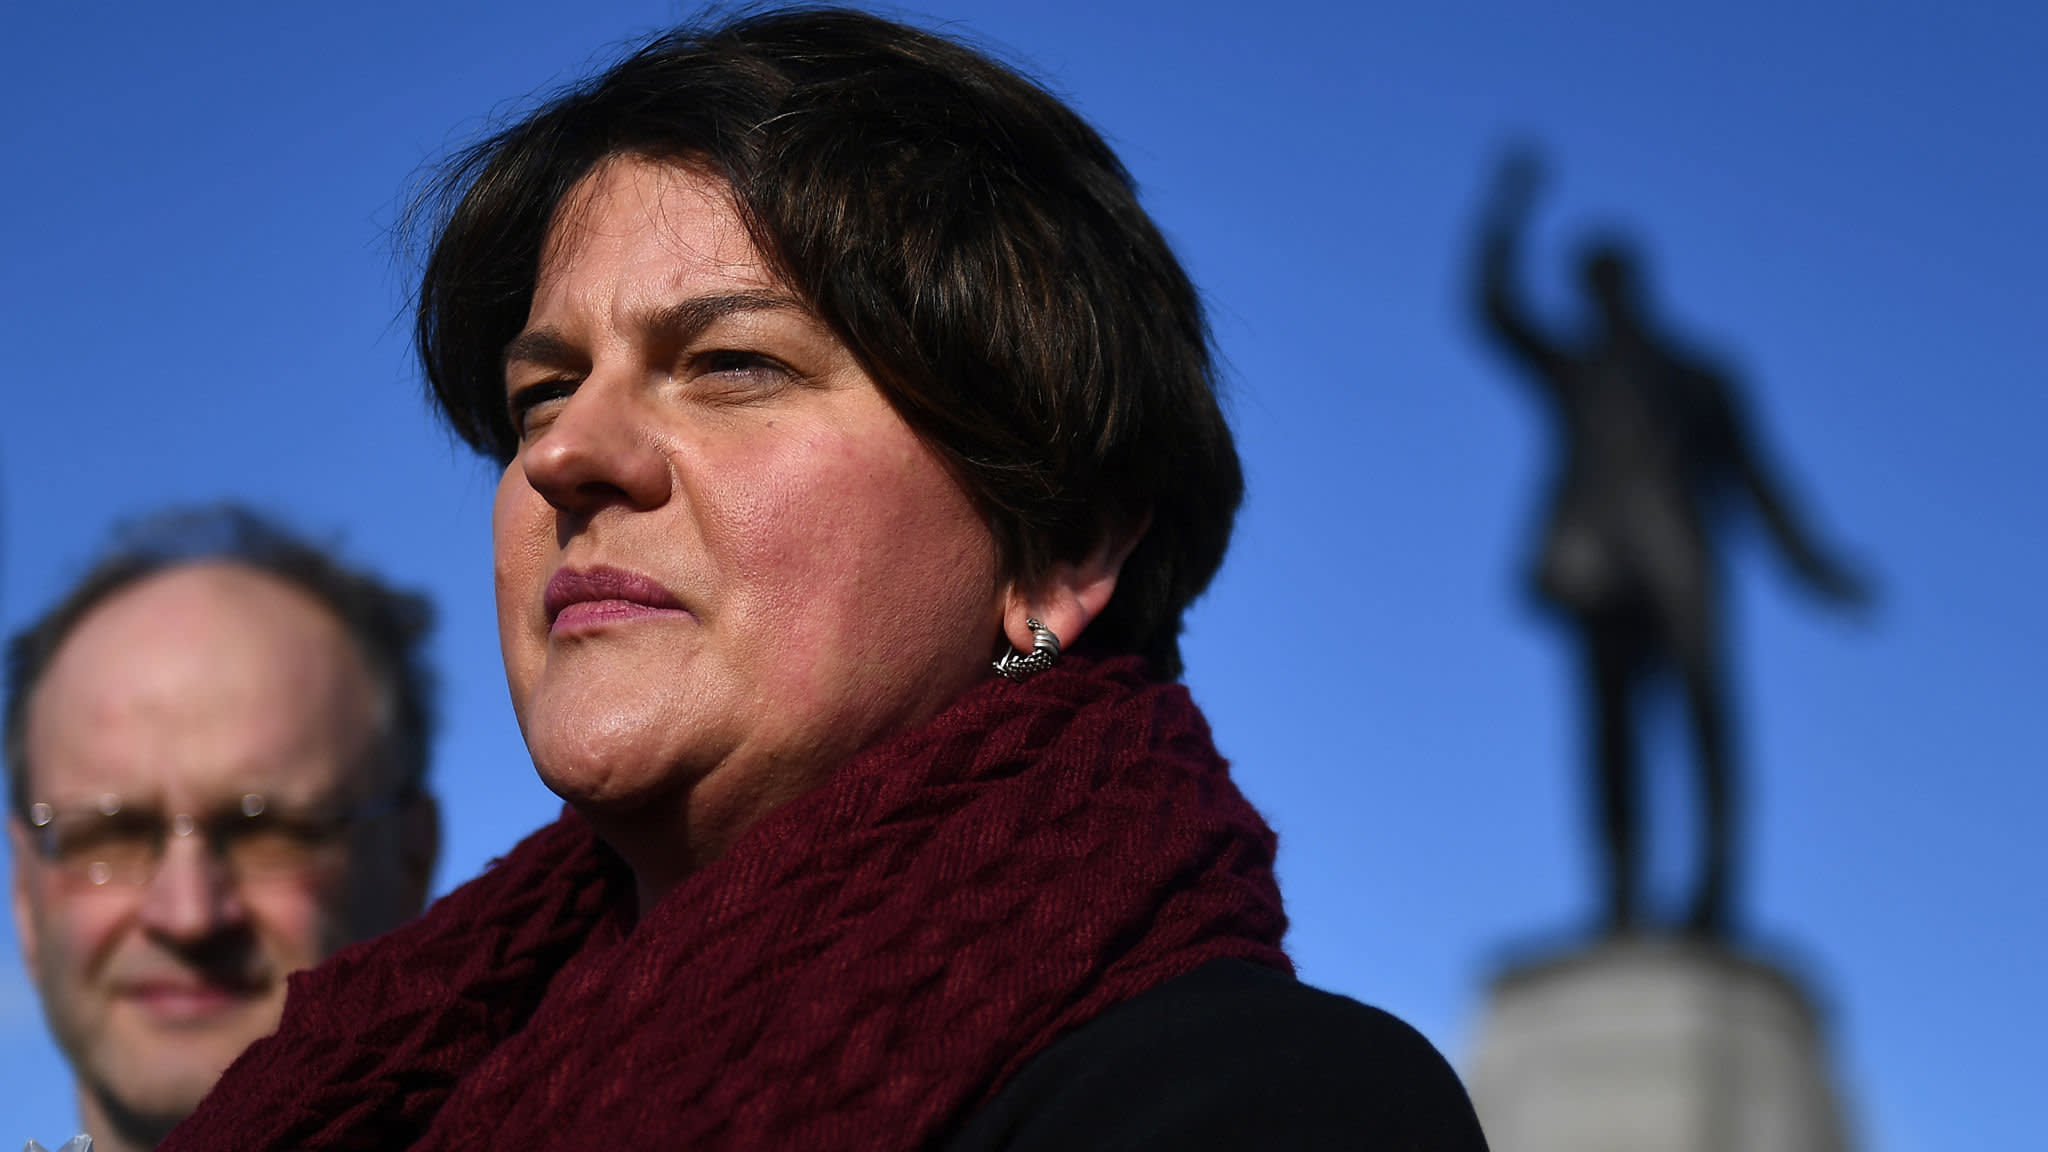 Imperialist attitudes and the DUP | Financial Times